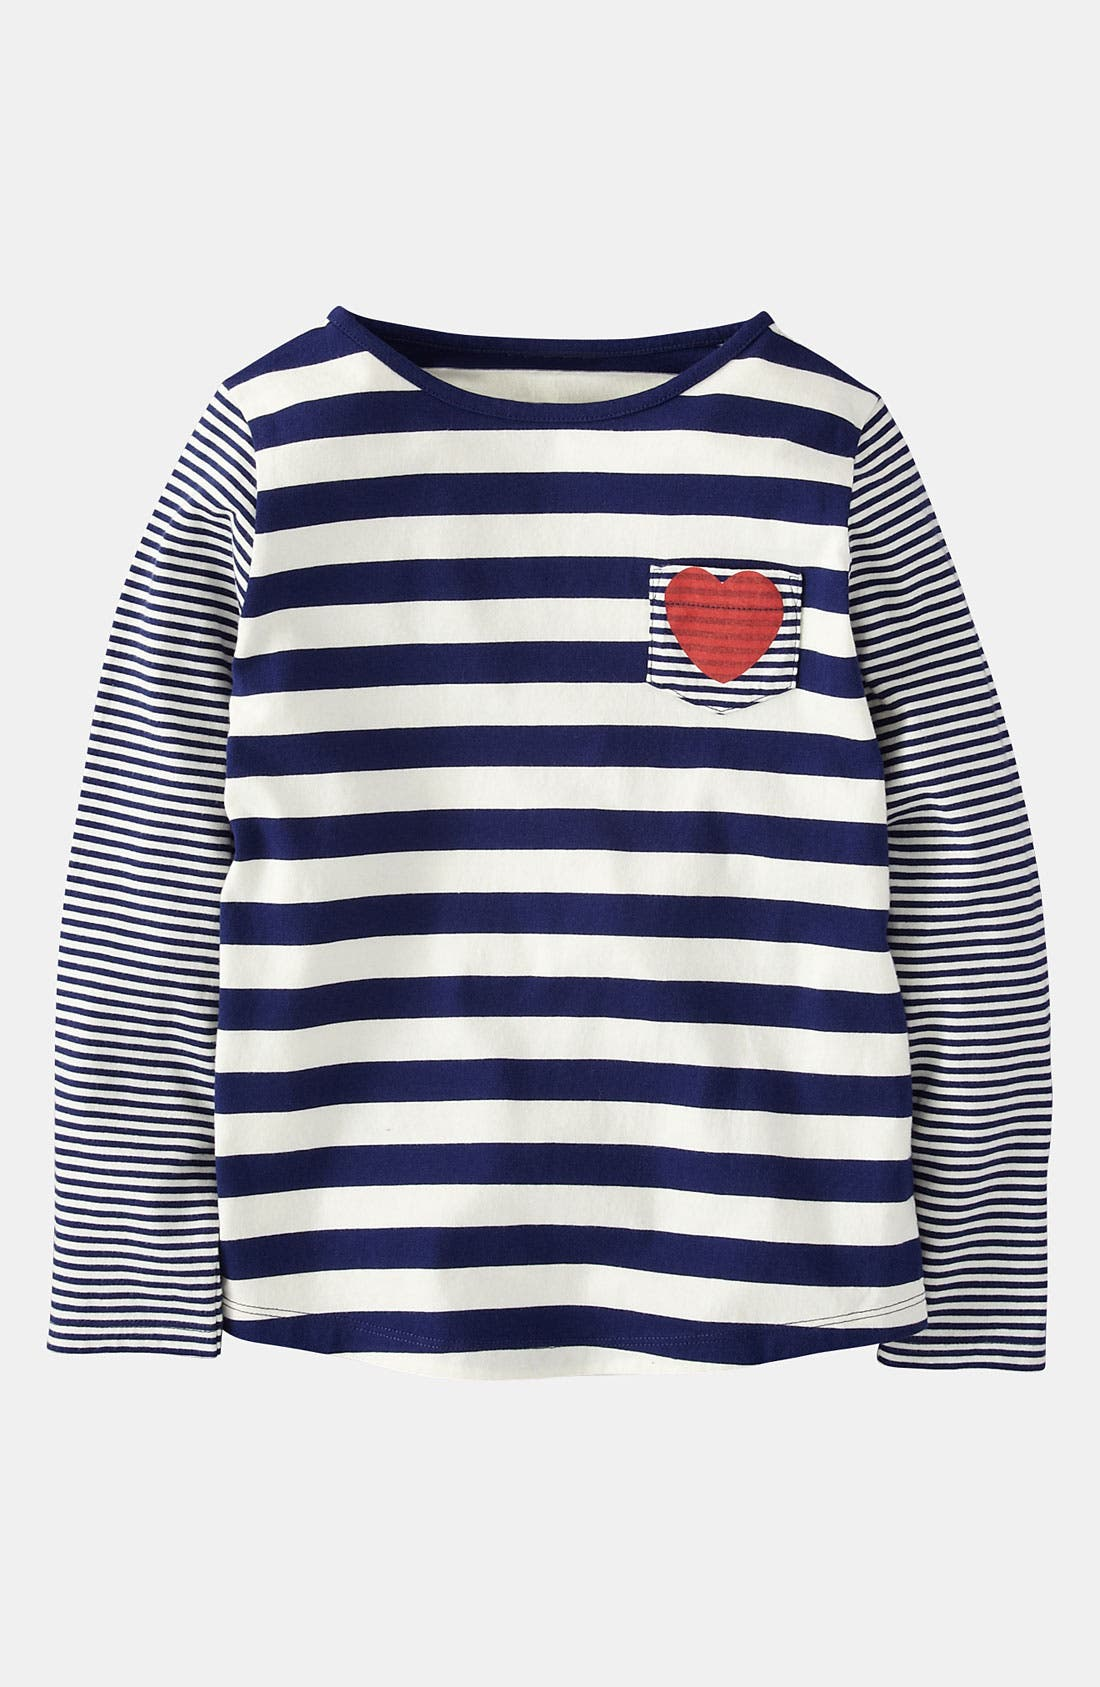 Main Image - Mini Boden 'Stripy Hotchpotch' Tee (Toddler)